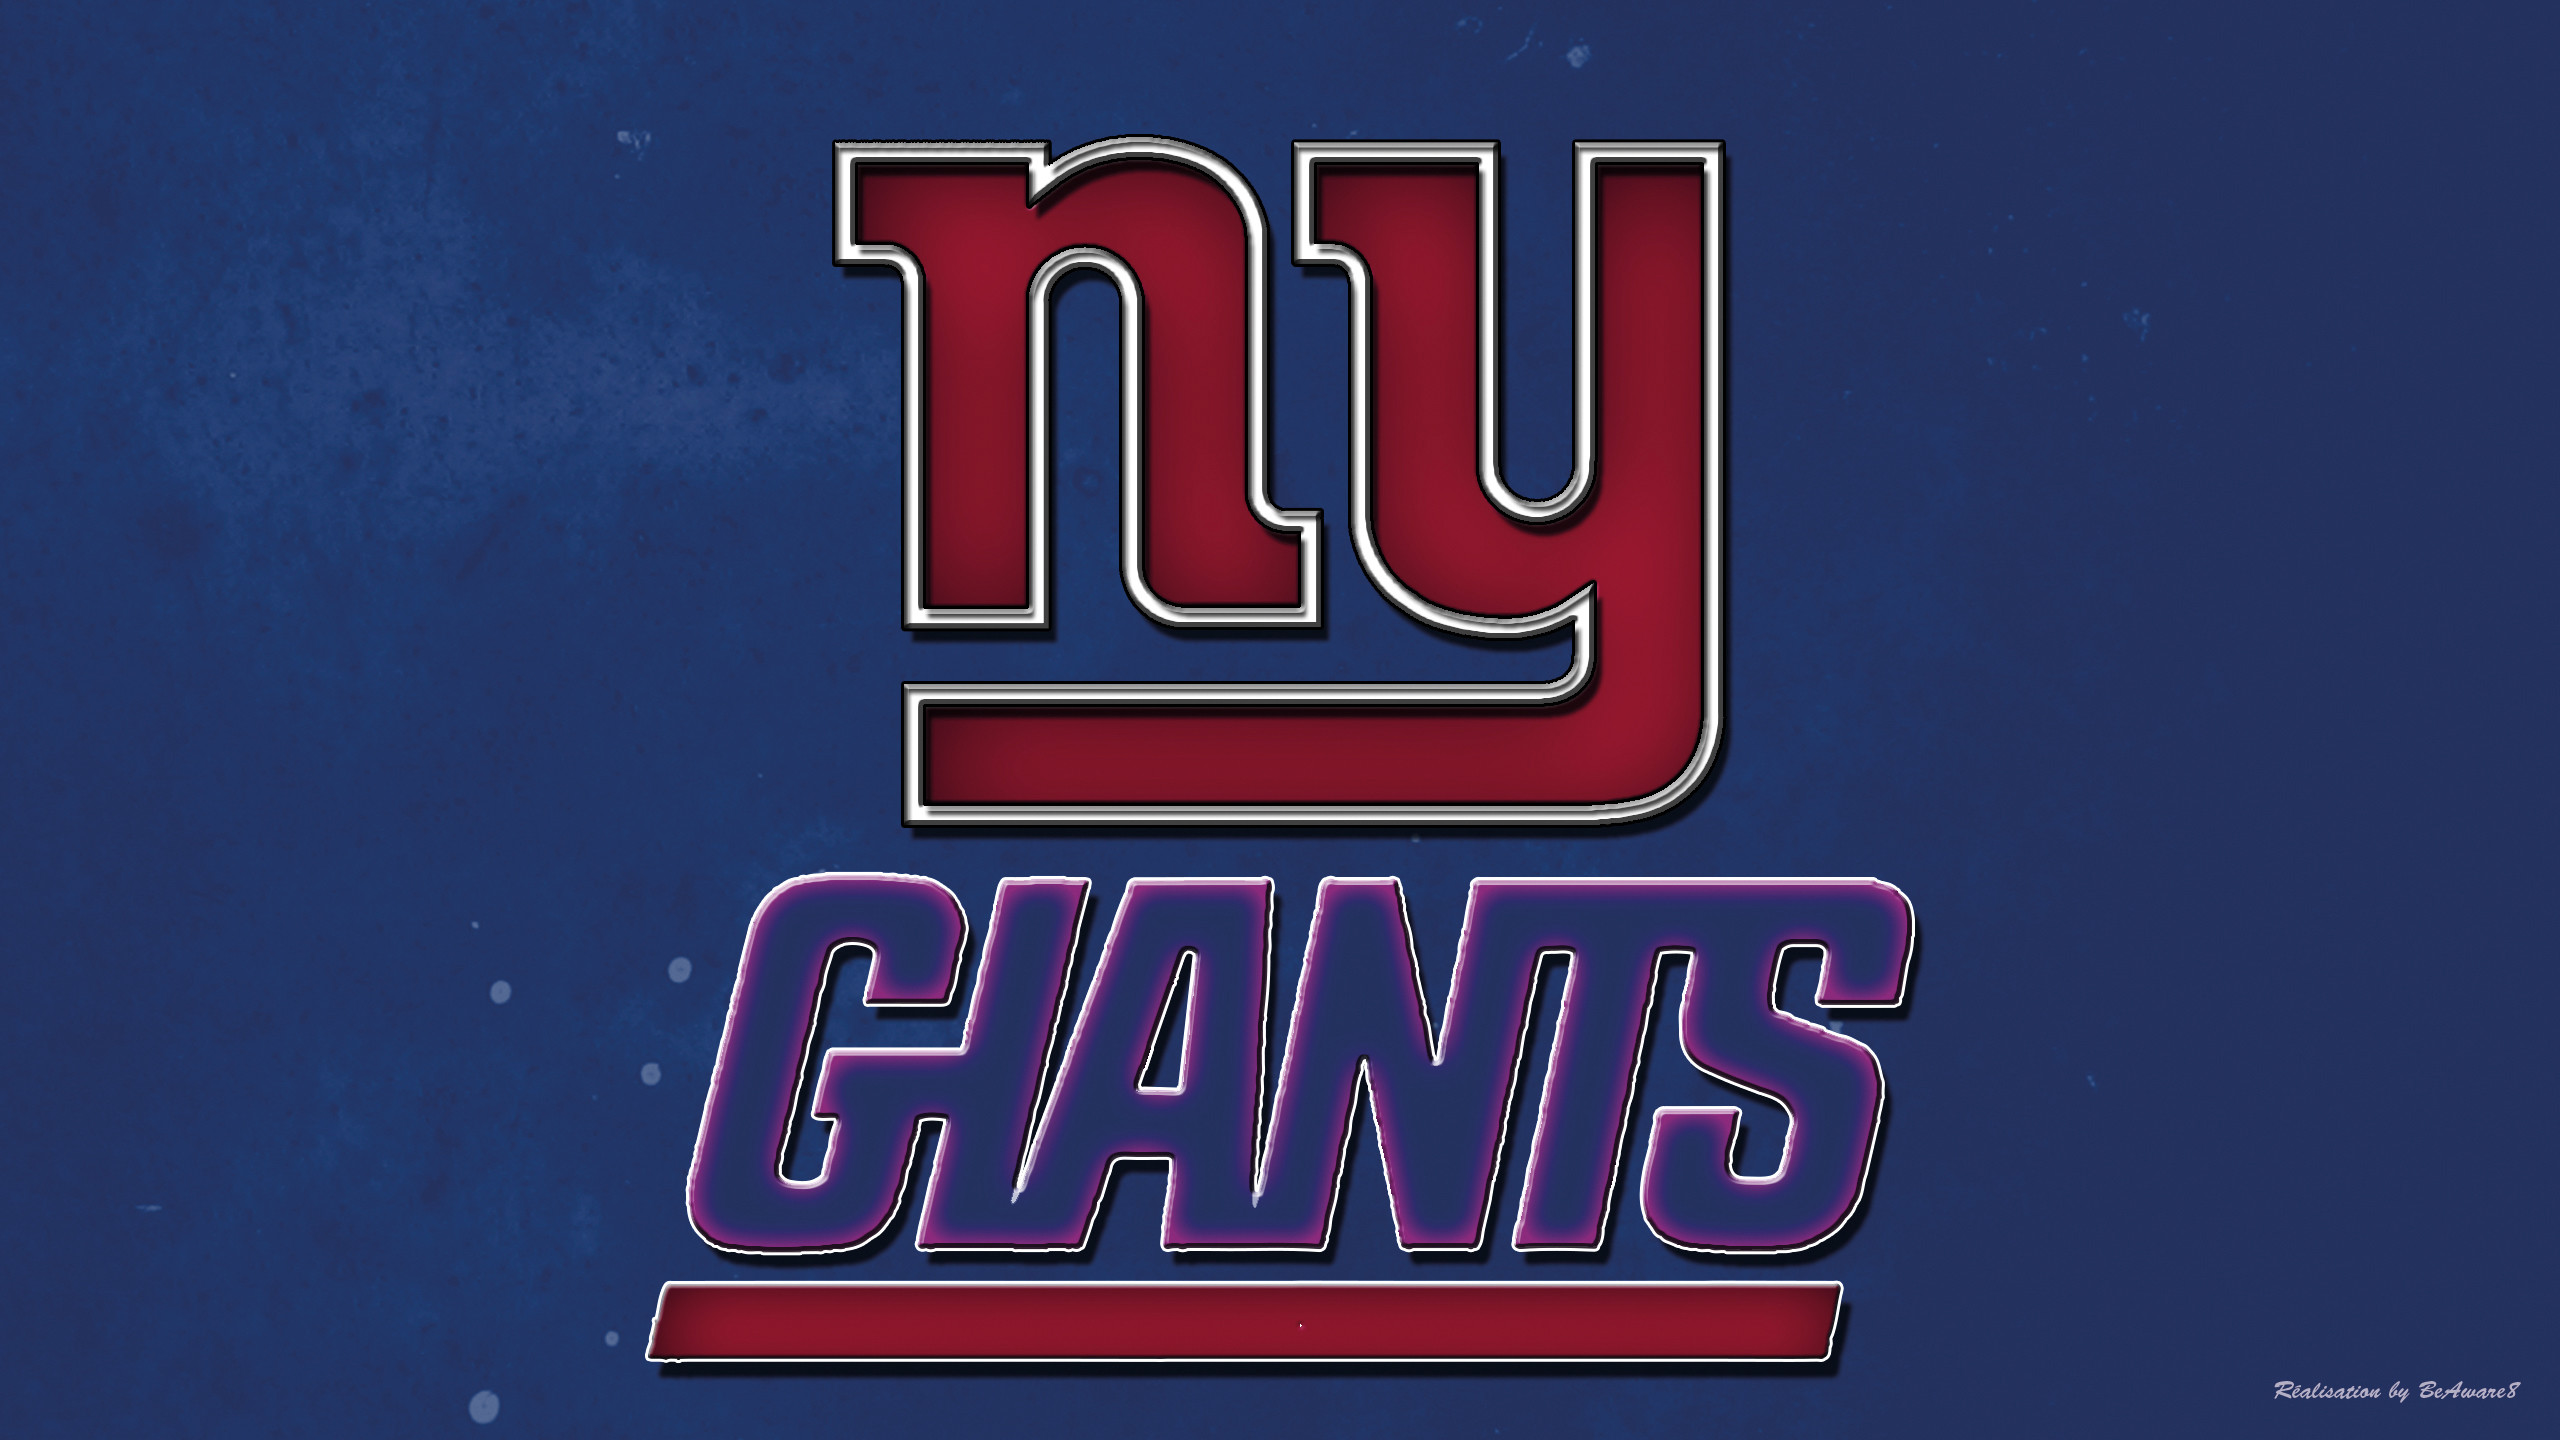 New York Giants by BeAware8 New York Giants by BeAware8